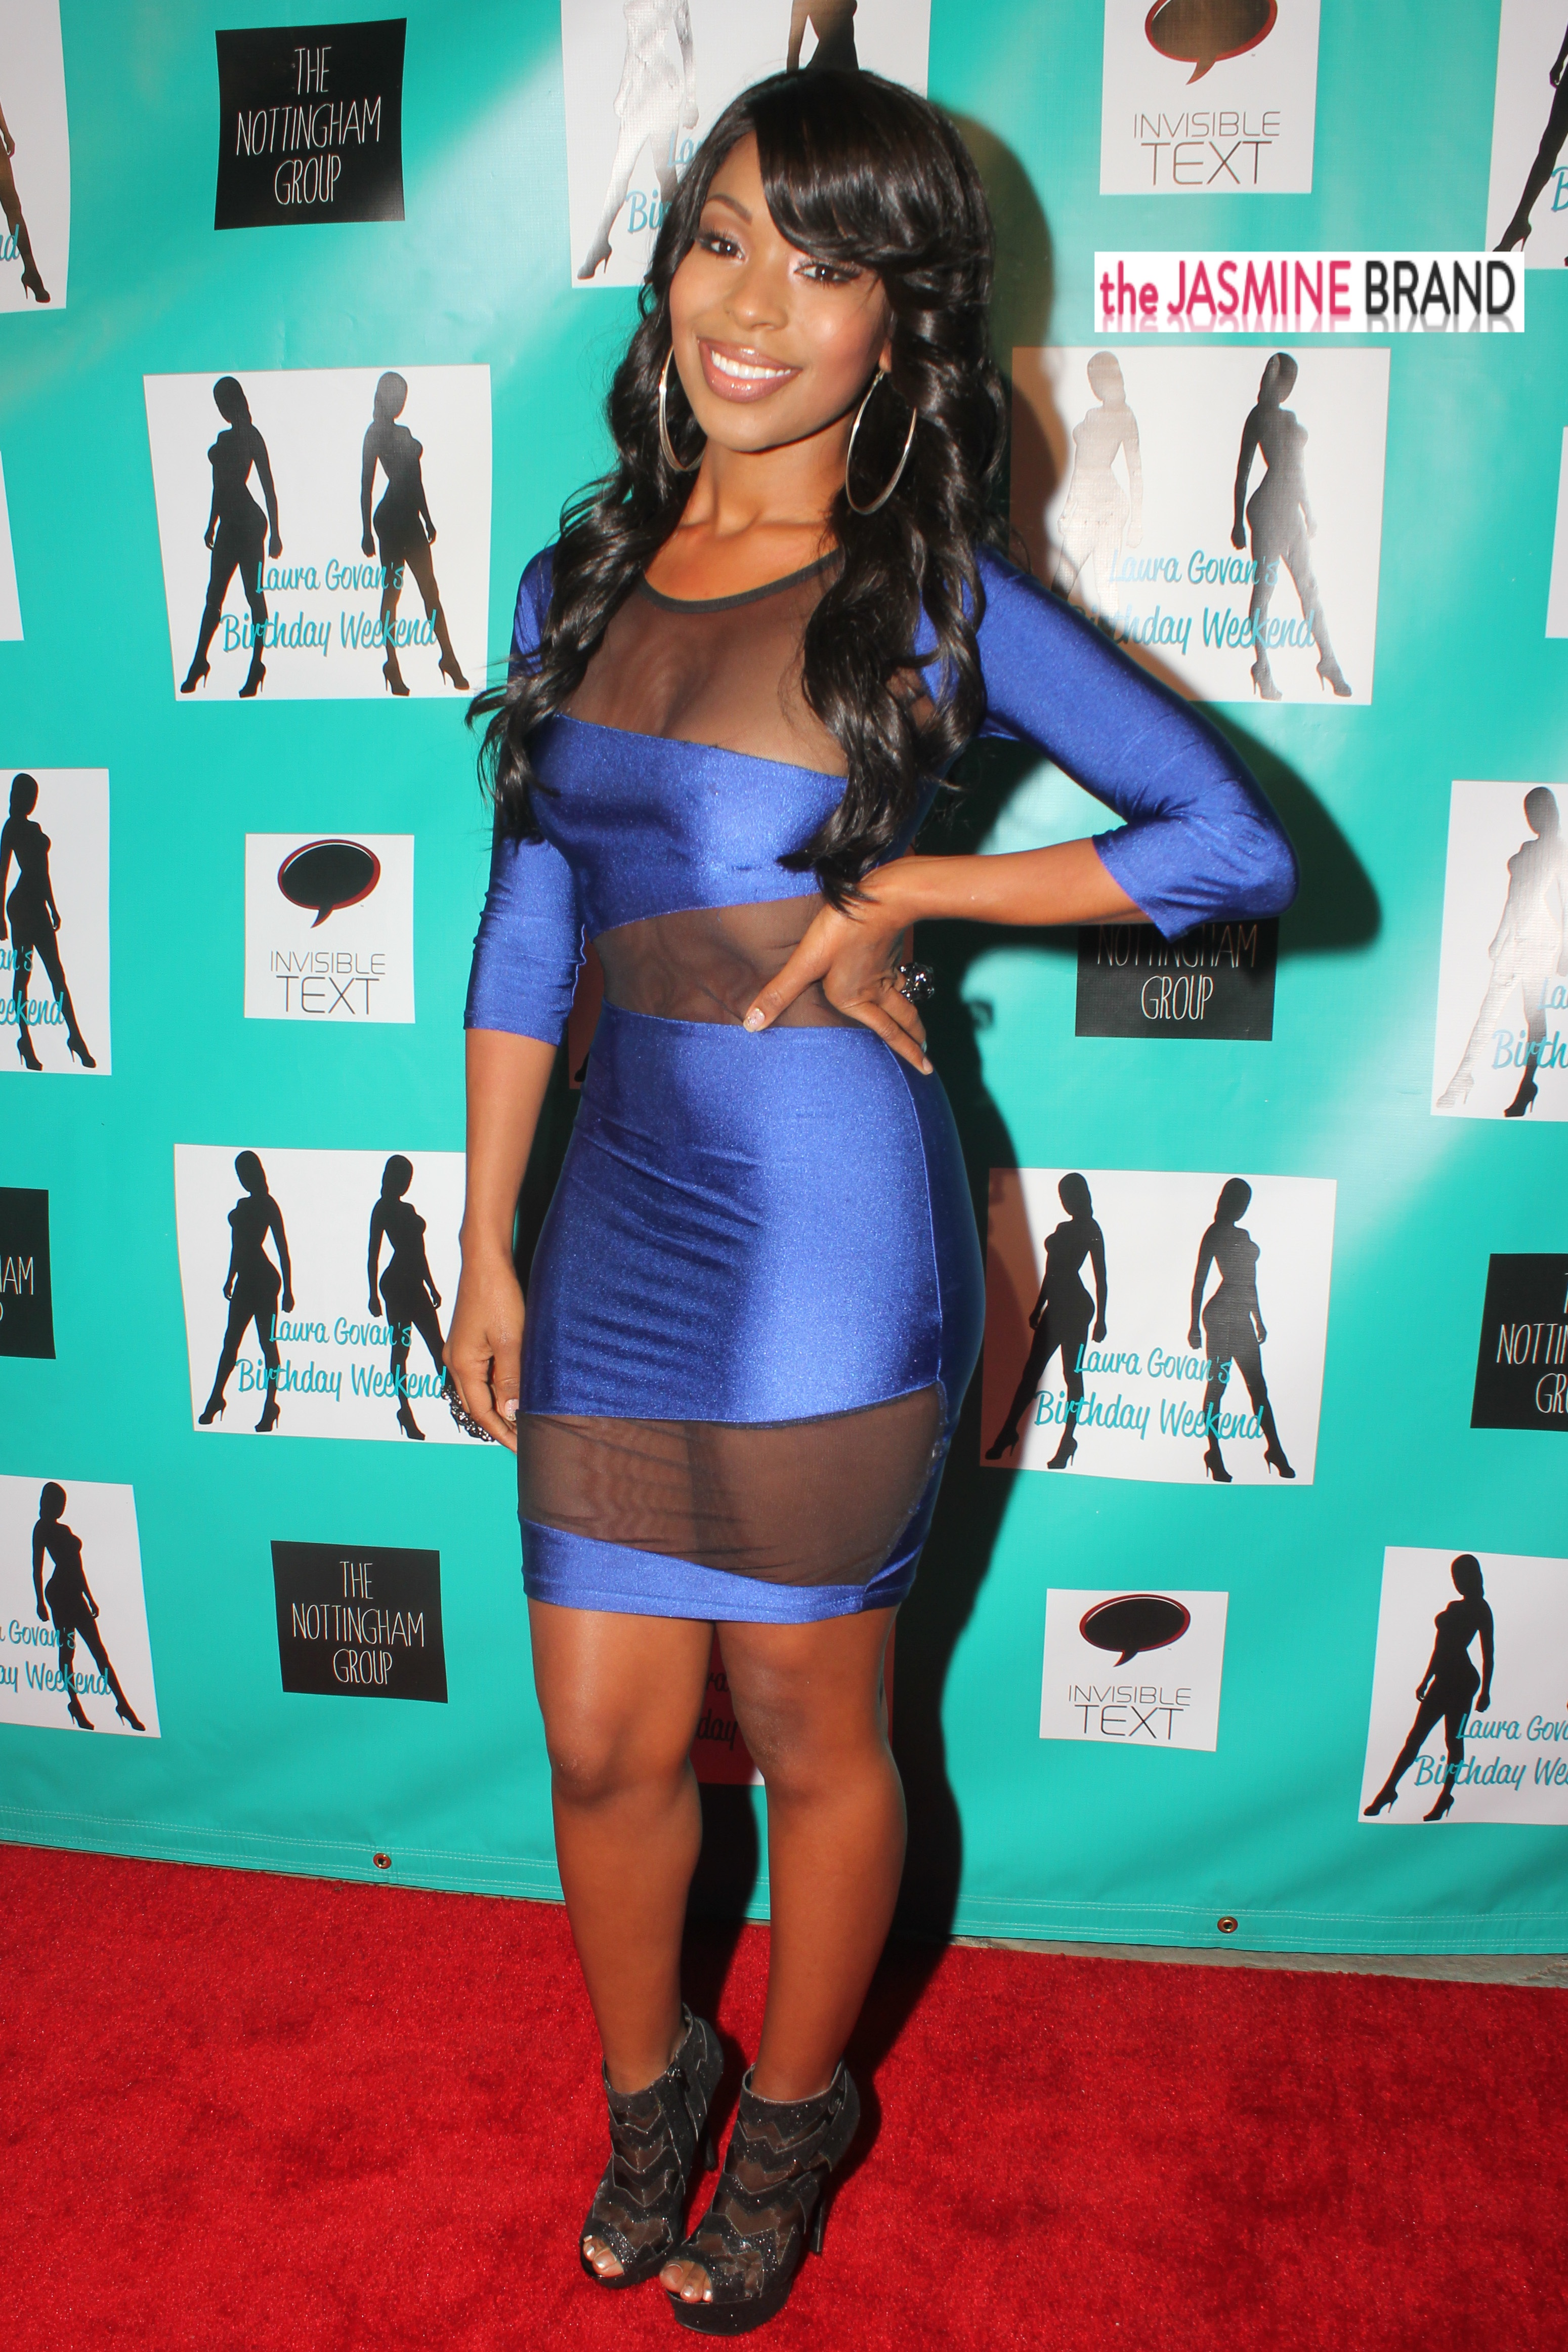 porscha coleman-laura govan birthday party 2013-the jasmine brand